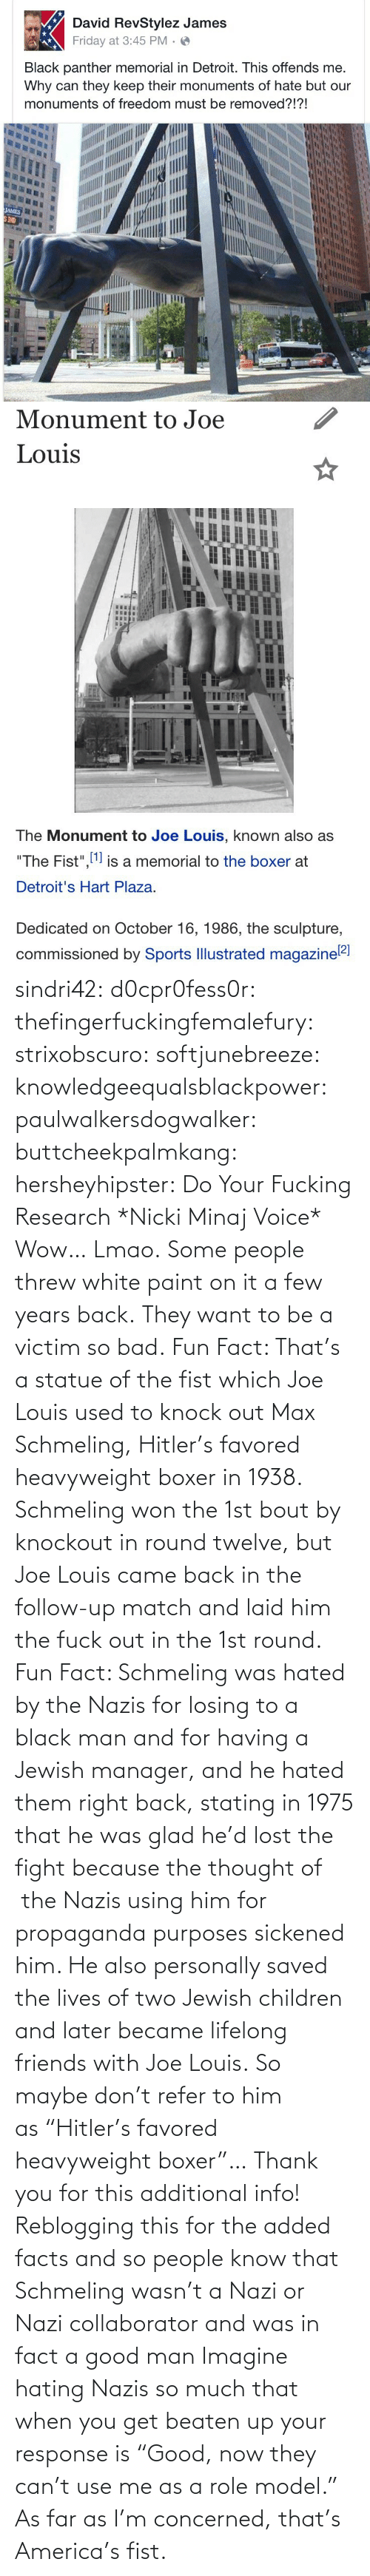 "right: sindri42:  d0cpr0fess0r:  thefingerfuckingfemalefury:  strixobscuro:  softjunebreeze:  knowledgeequalsblackpower:  paulwalkersdogwalker:   buttcheekpalmkang:   hersheyhipster:  Do Your Fucking Research *Nicki Minaj Voice*    Wow… Lmao.   Some people threw white paint on it a few years back.   They want to be a victim so bad.  Fun Fact: That's a statue of the fist which Joe Louis used to knock out Max Schmeling, Hitler's favored heavyweight boxer in 1938. Schmeling won the 1st bout by knockout in round twelve, but Joe Louis came back in the follow-up match and laid him the fuck out in the 1st round.  Fun Fact: Schmeling was hated by the Nazis for losing to a black man and for having a Jewish manager, and he hated them right back, stating in 1975 that he was glad he'd lost the fight because the thought of  the Nazis using him for propaganda purposes sickened him. He also personally saved the lives of two Jewish children and later became lifelong friends with Joe Louis. So maybe don't refer to him as ""Hitler's favored heavyweight boxer""…  Thank you for this additional info! Reblogging this for the added facts and so people know that Schmeling wasn't a Nazi or Nazi collaborator and was in fact a good man   Imagine hating Nazis so much that when you get beaten up your response is ""Good, now they can't use me as a role model.""  As far as I'm concerned, that's America's fist."